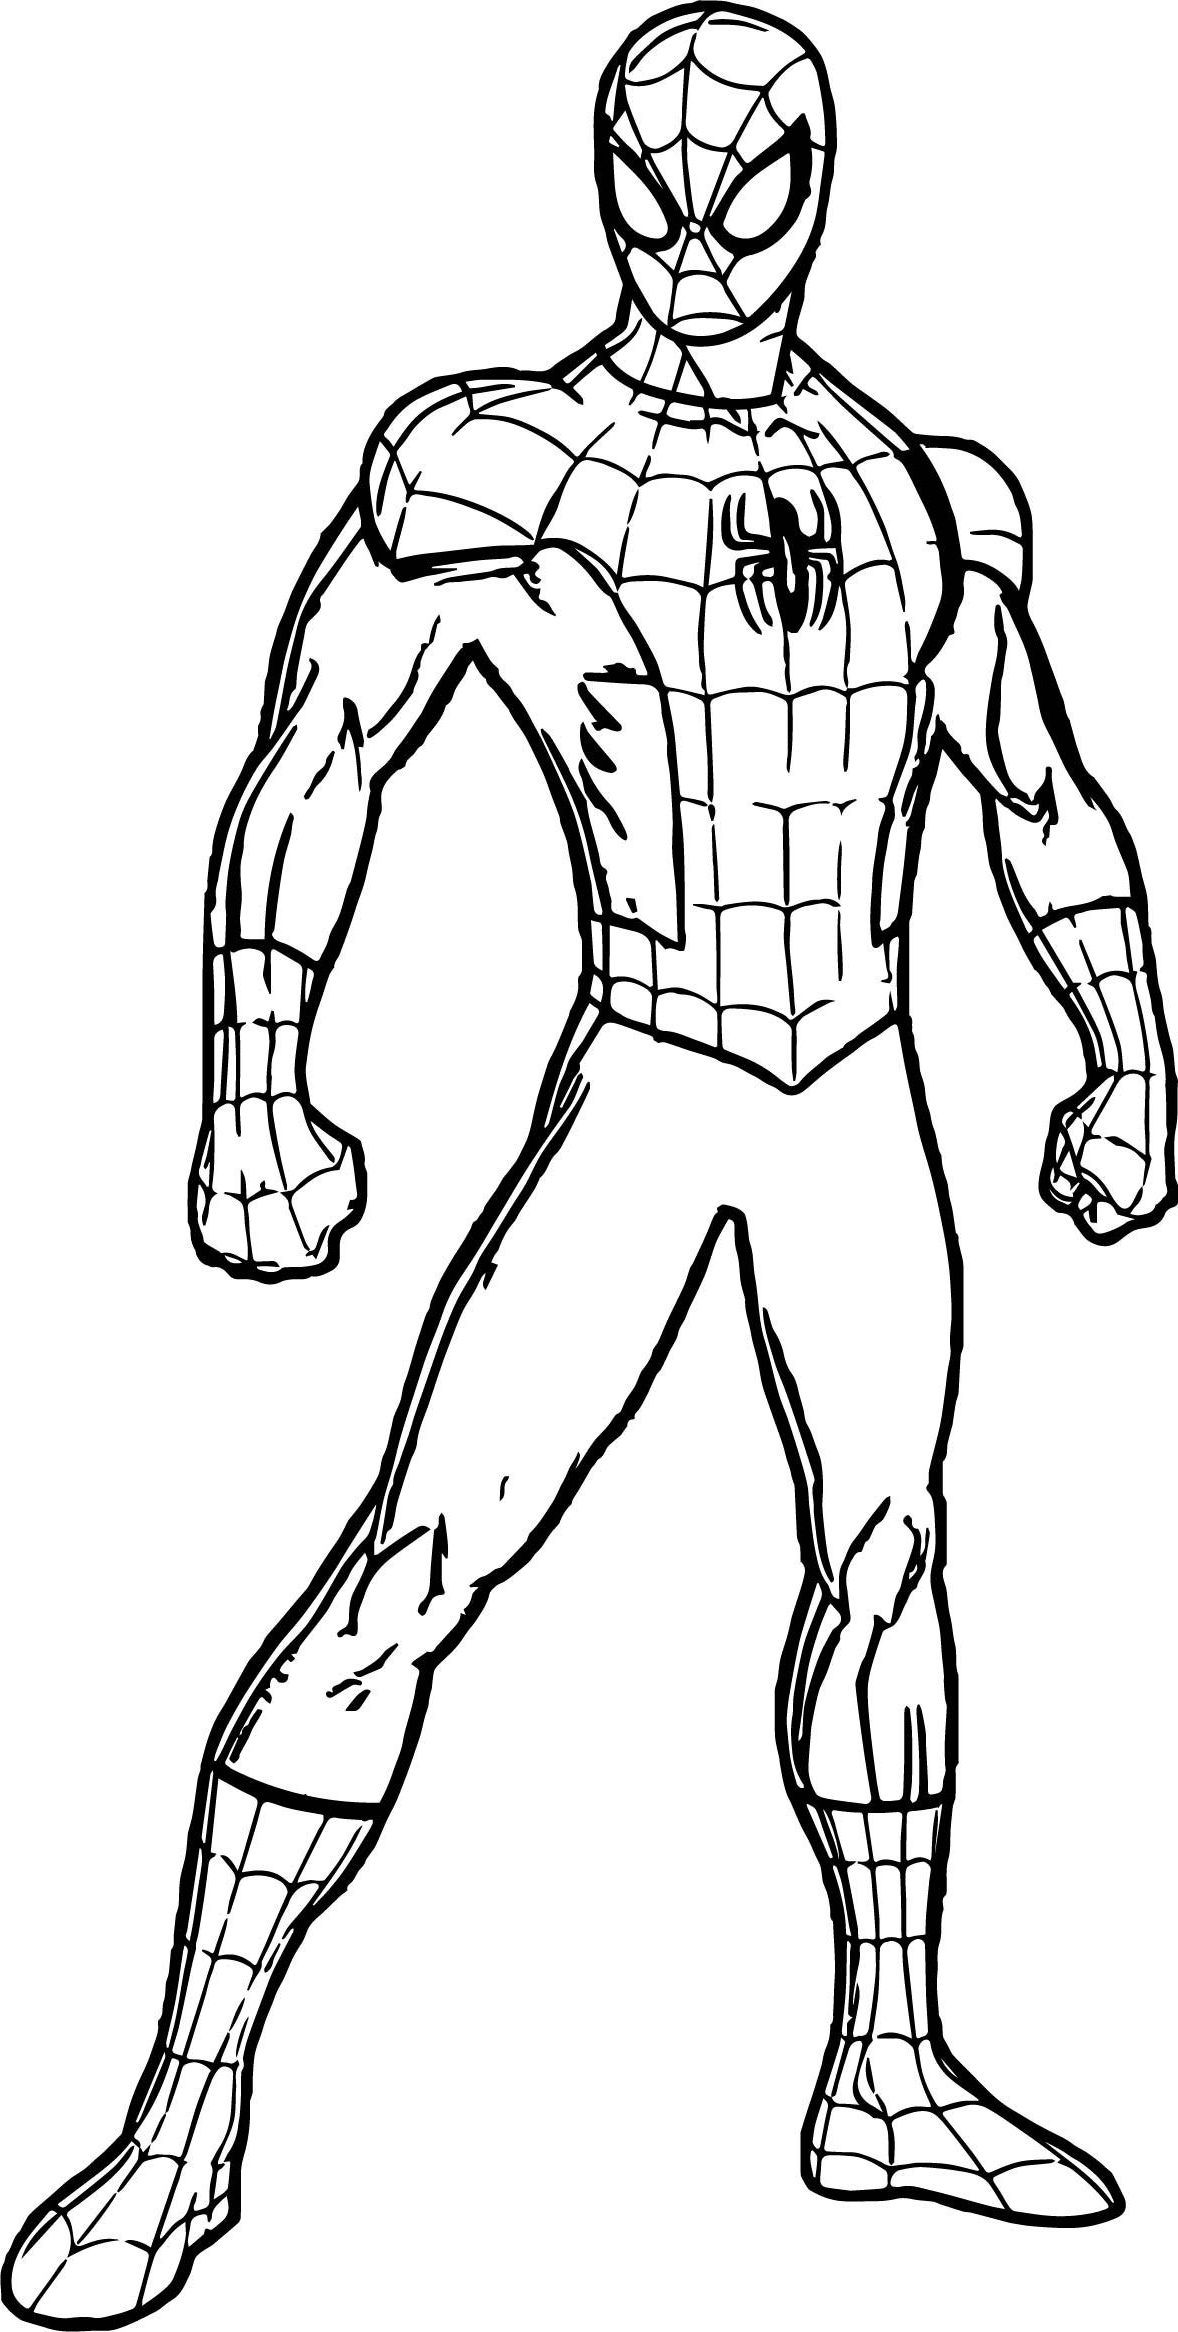 Spiderman Suit Coloring Page In 2020 Superhero Coloring Pages